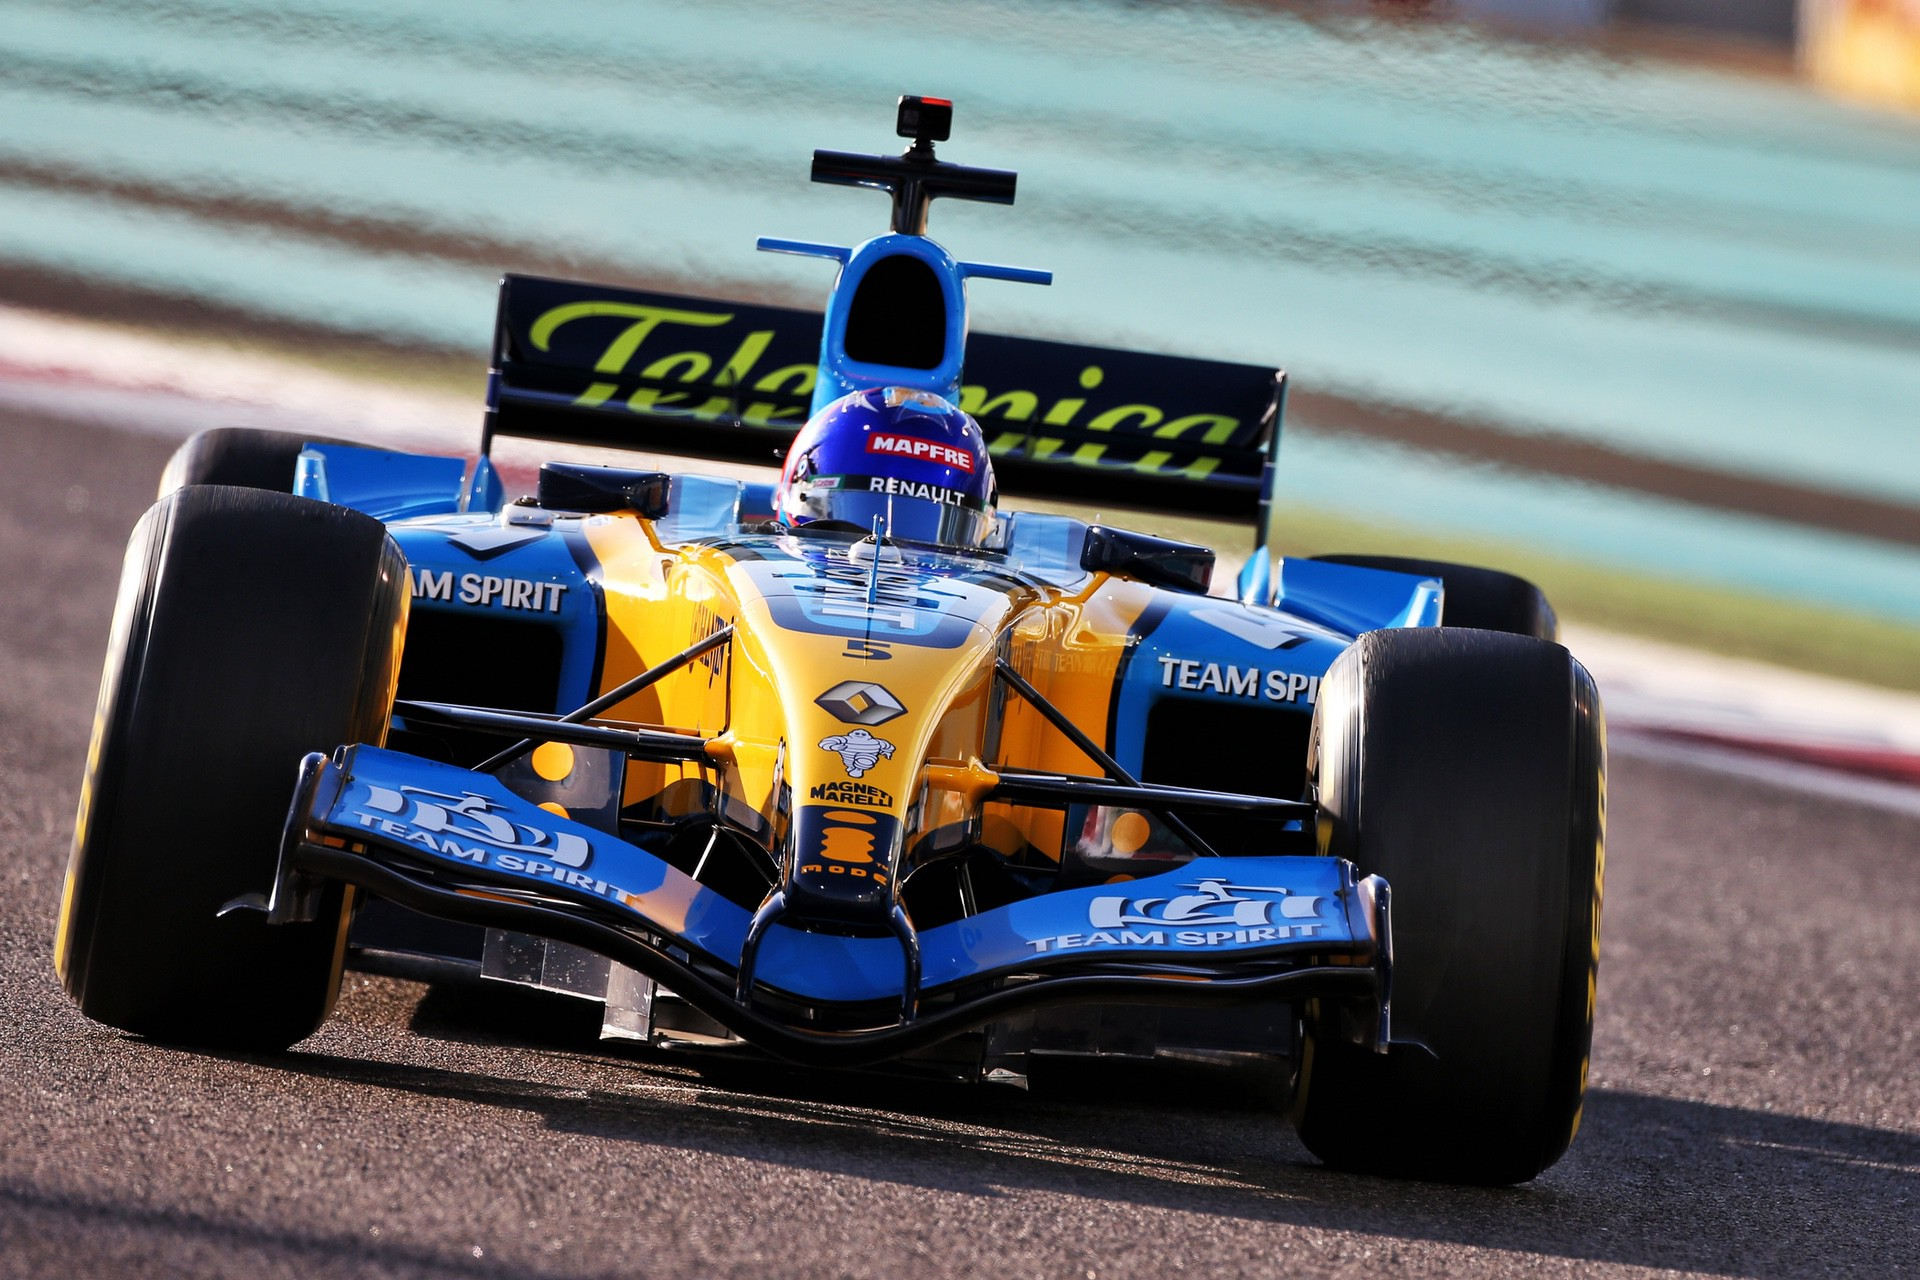 Alonso_Renault_RS25_0002